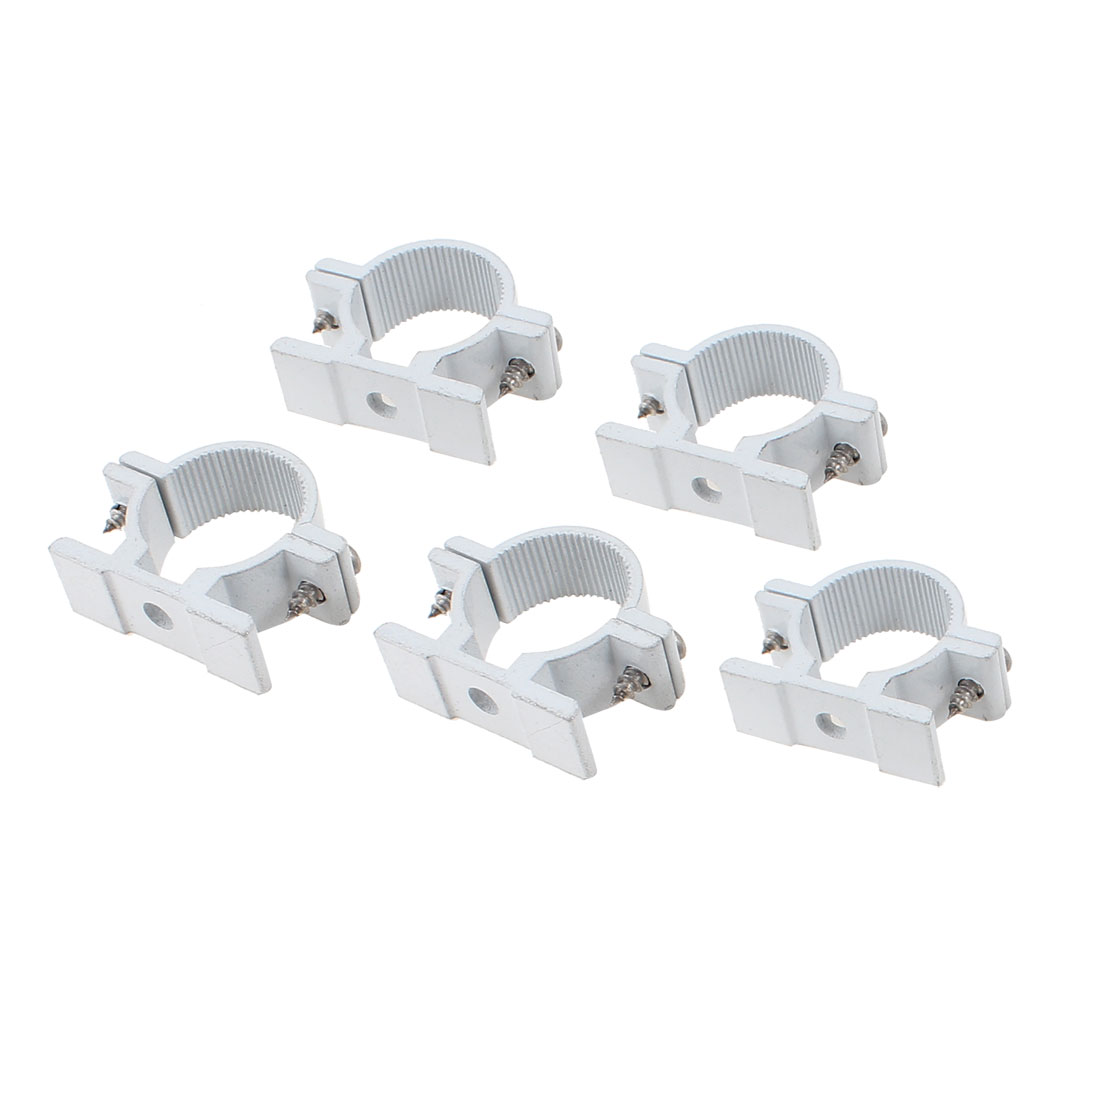 5 Pcs 25mm Diameter Water Supply Pipe Clamps Screw Clips Fitting